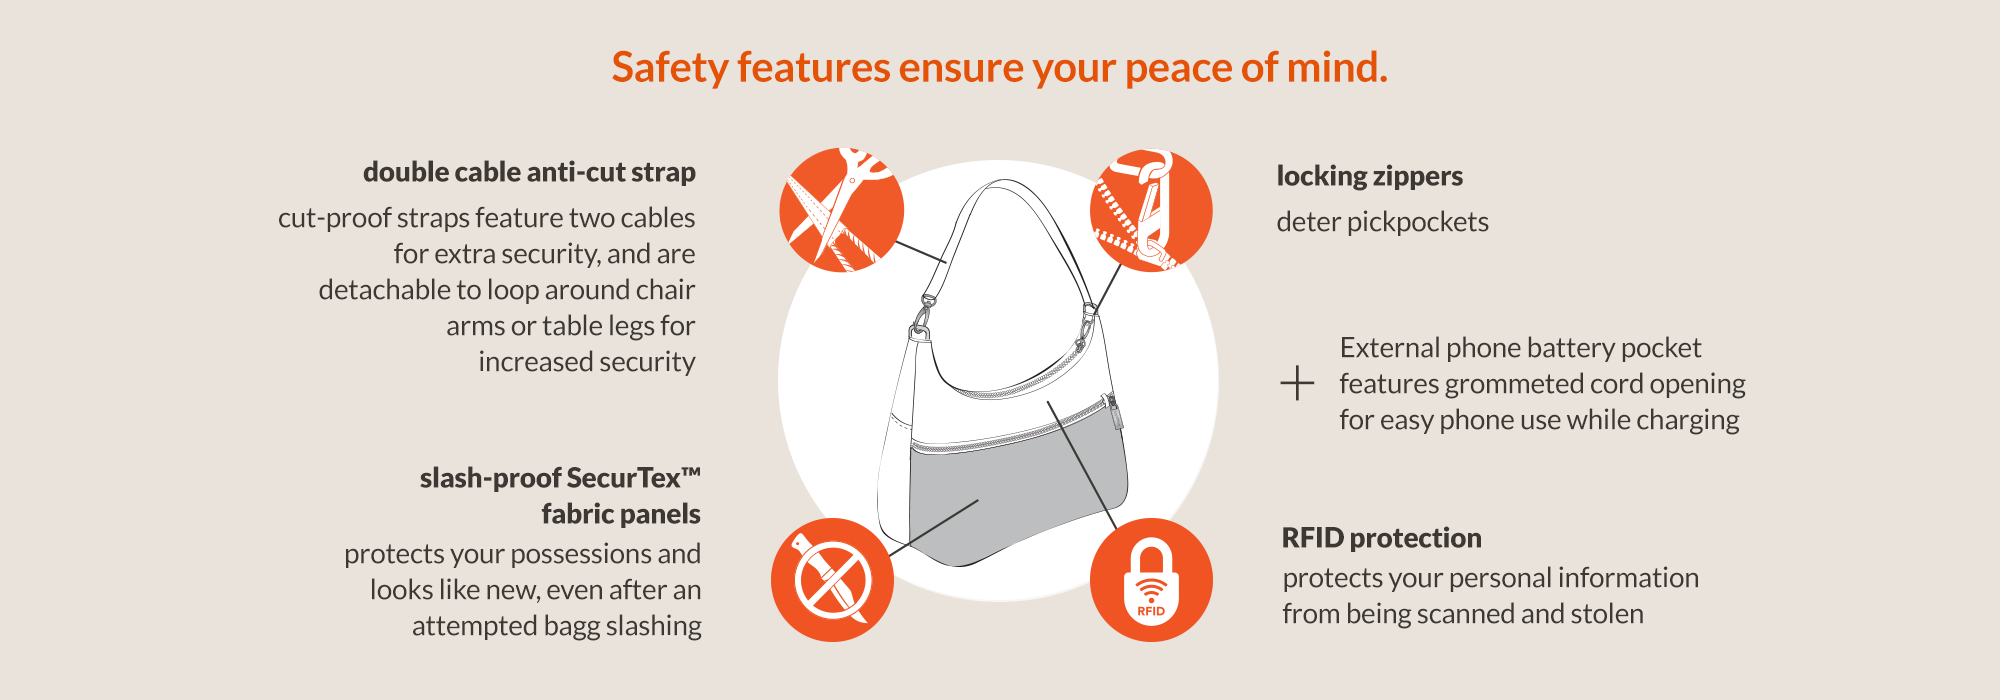 safety features ensure your peace of mind.